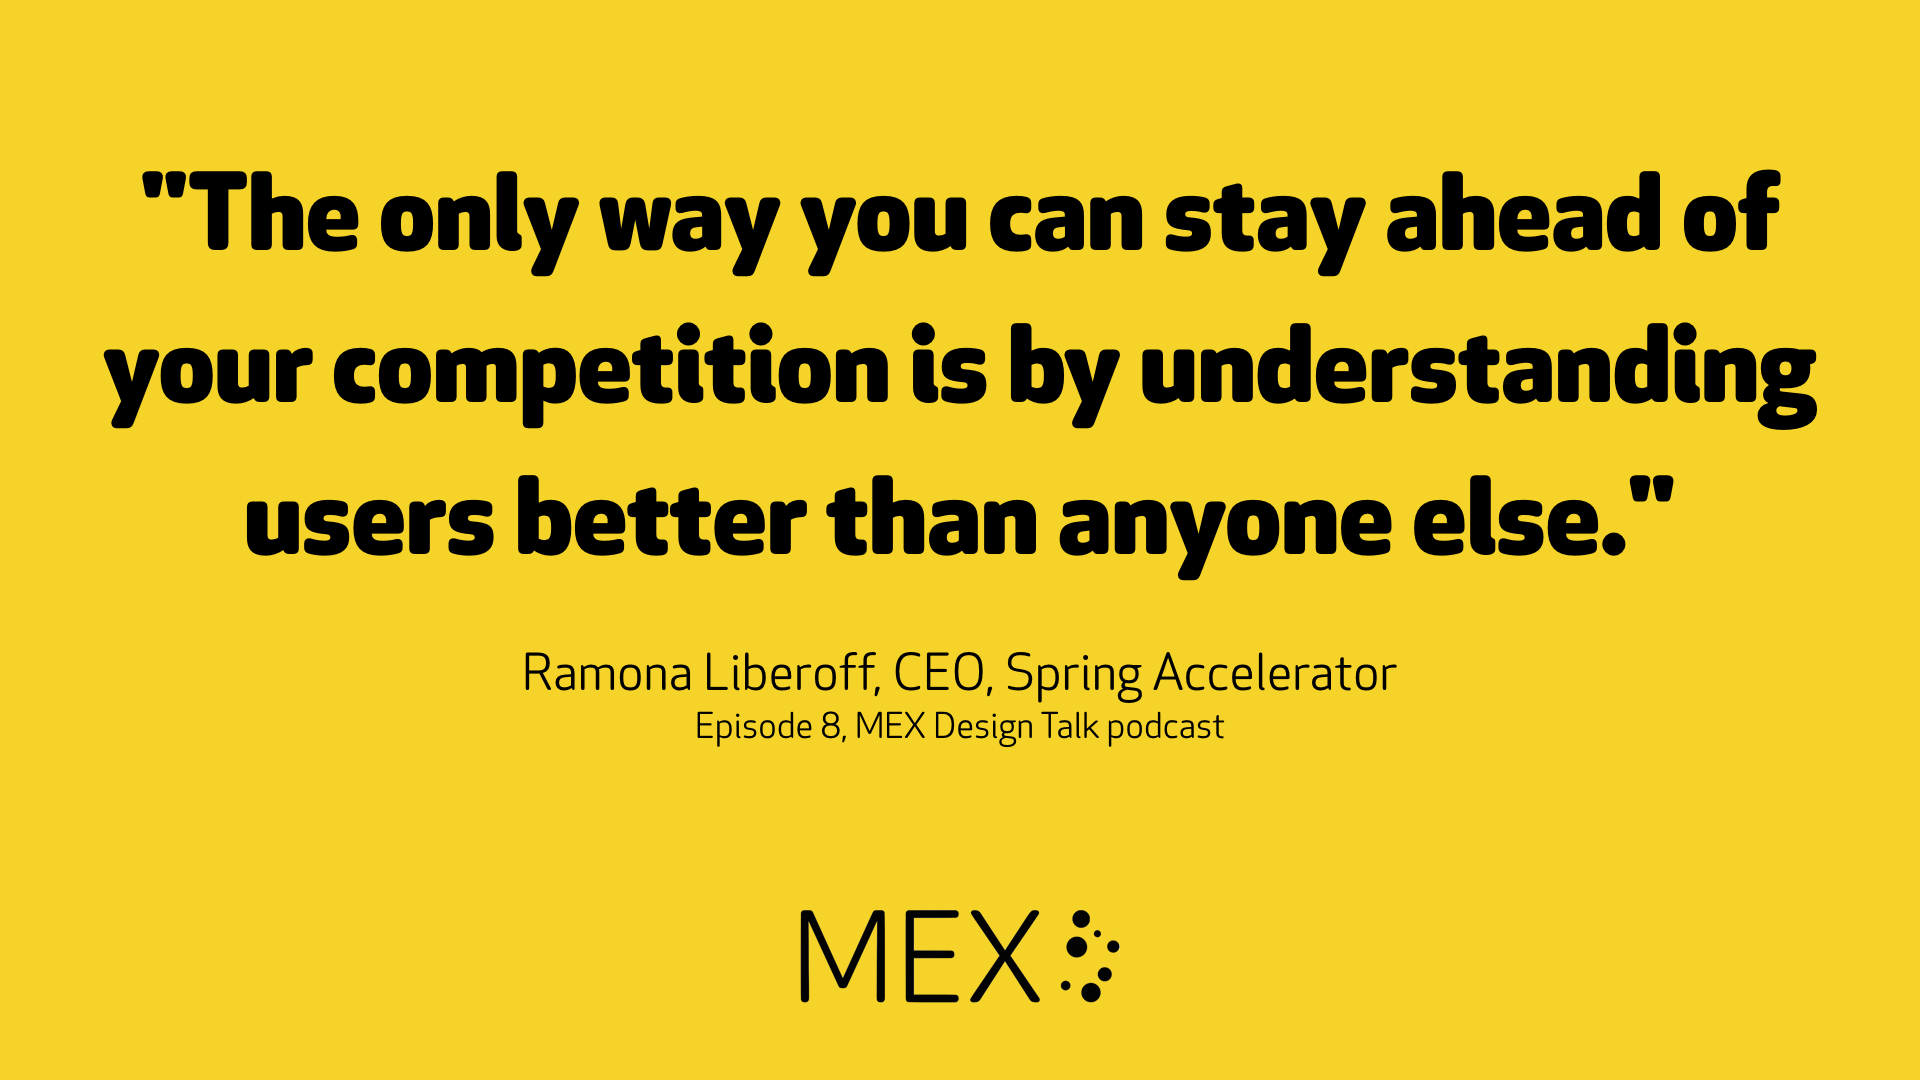 Ramona Liberoff on the MEX Design Talk podcast